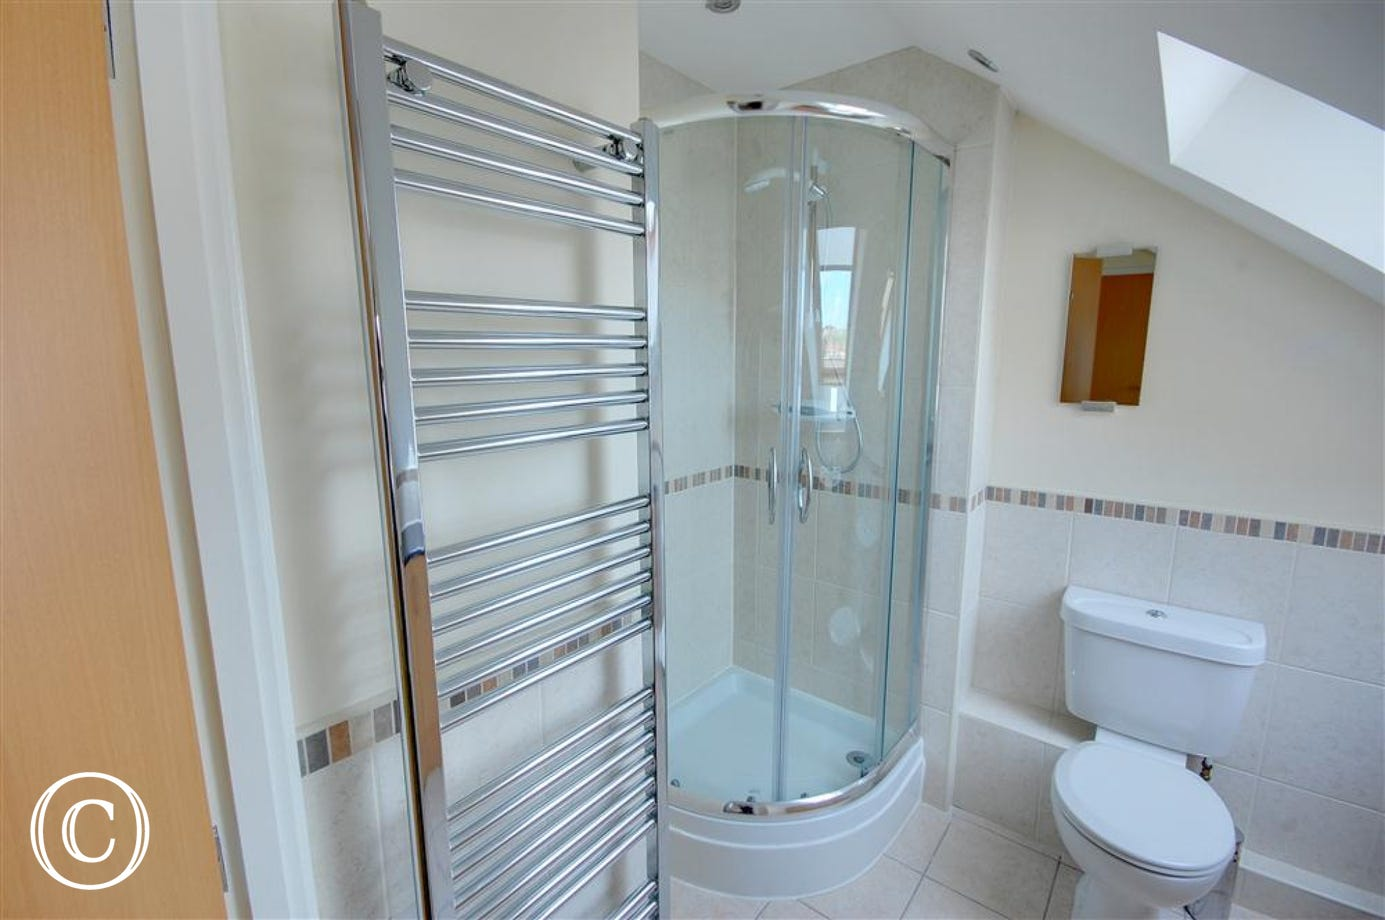 A view of the modern Bathroom with its spacious shower.